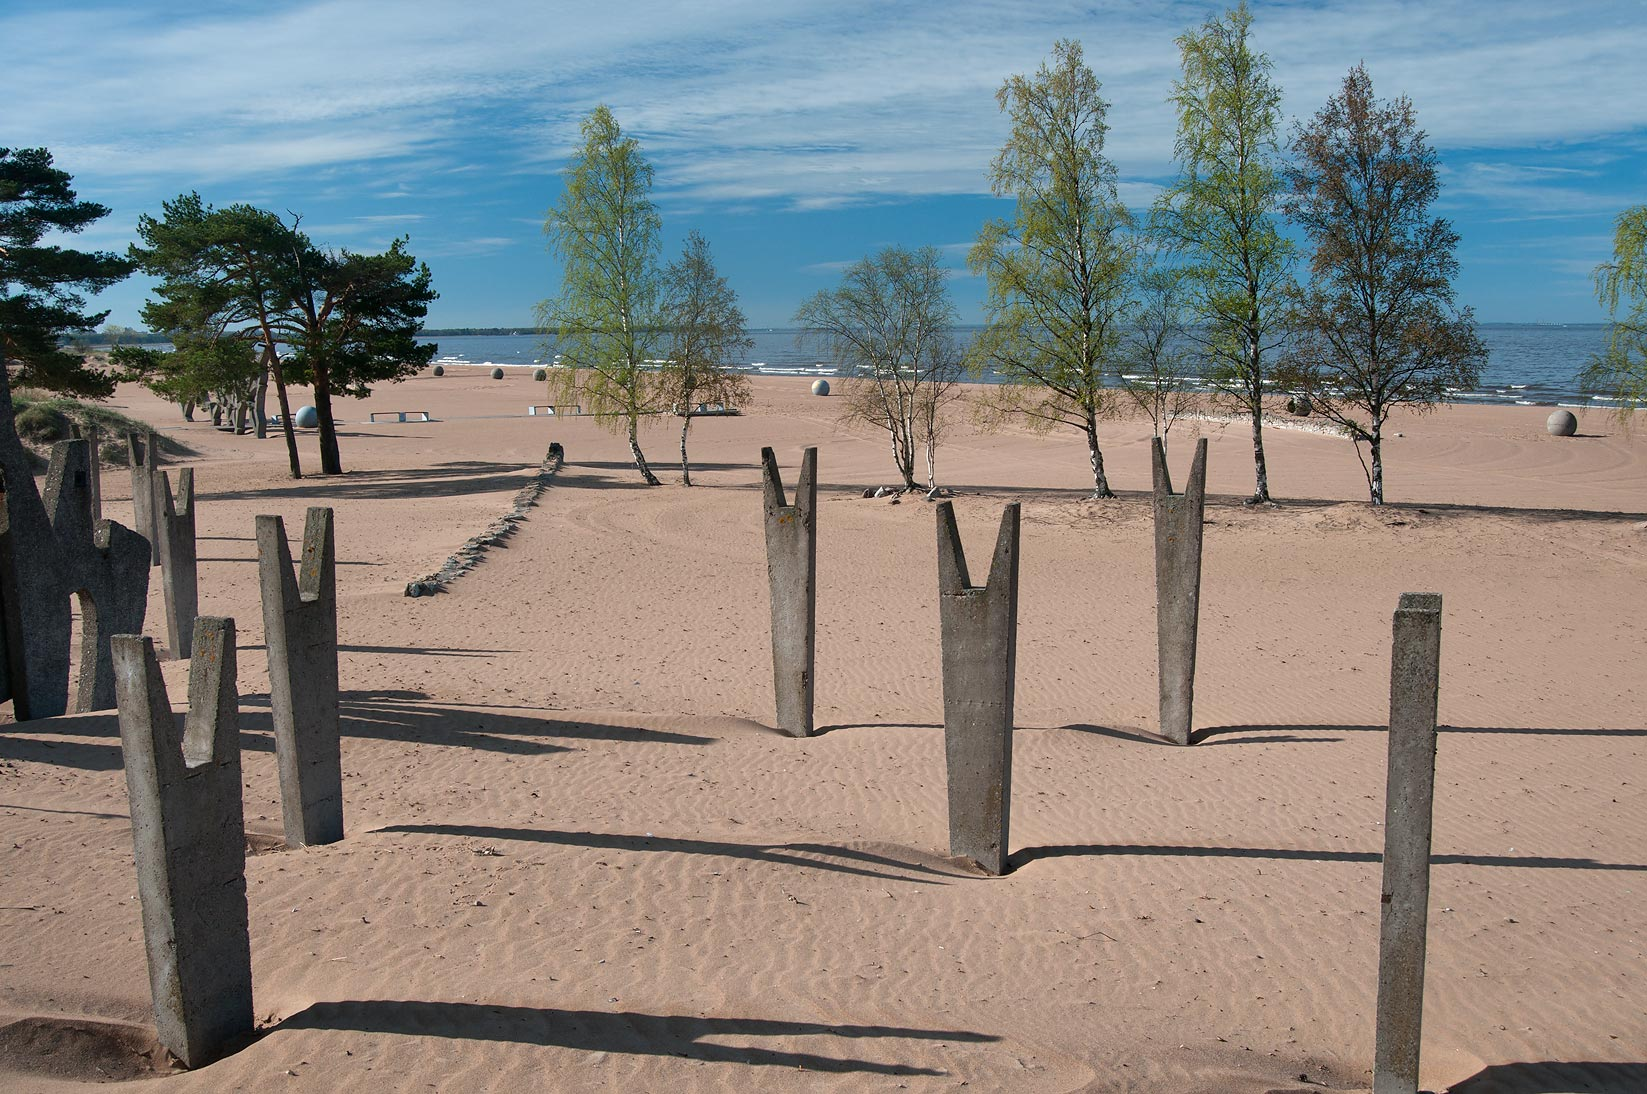 Public sculptures on Laskovy Beach in Solnechnoe, a suburb of St.Petersburg. Russia